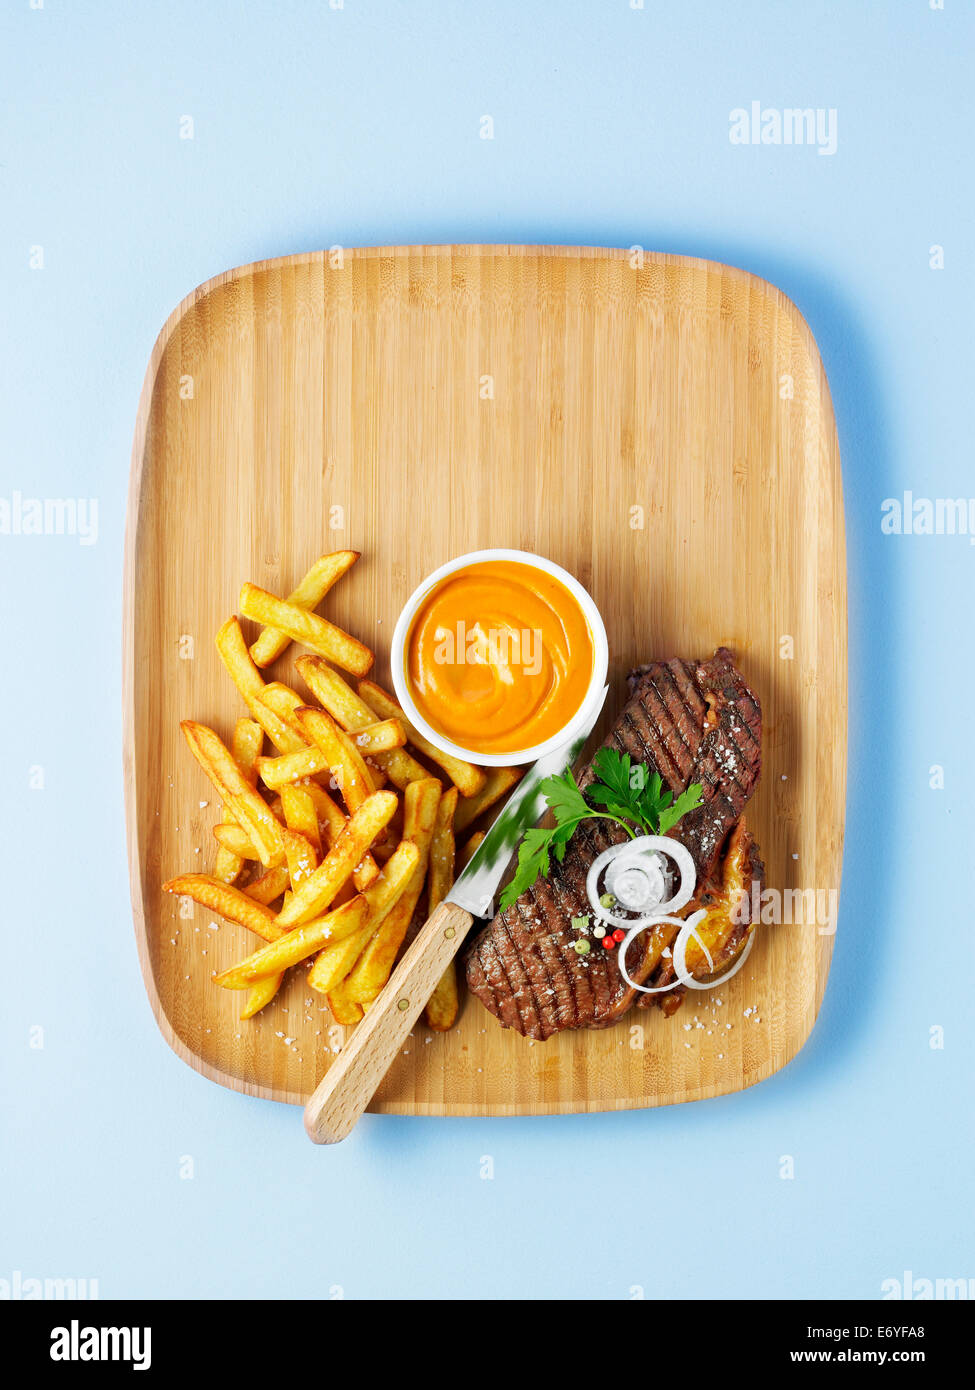 Grilled rump steak with french fries - Stock Image